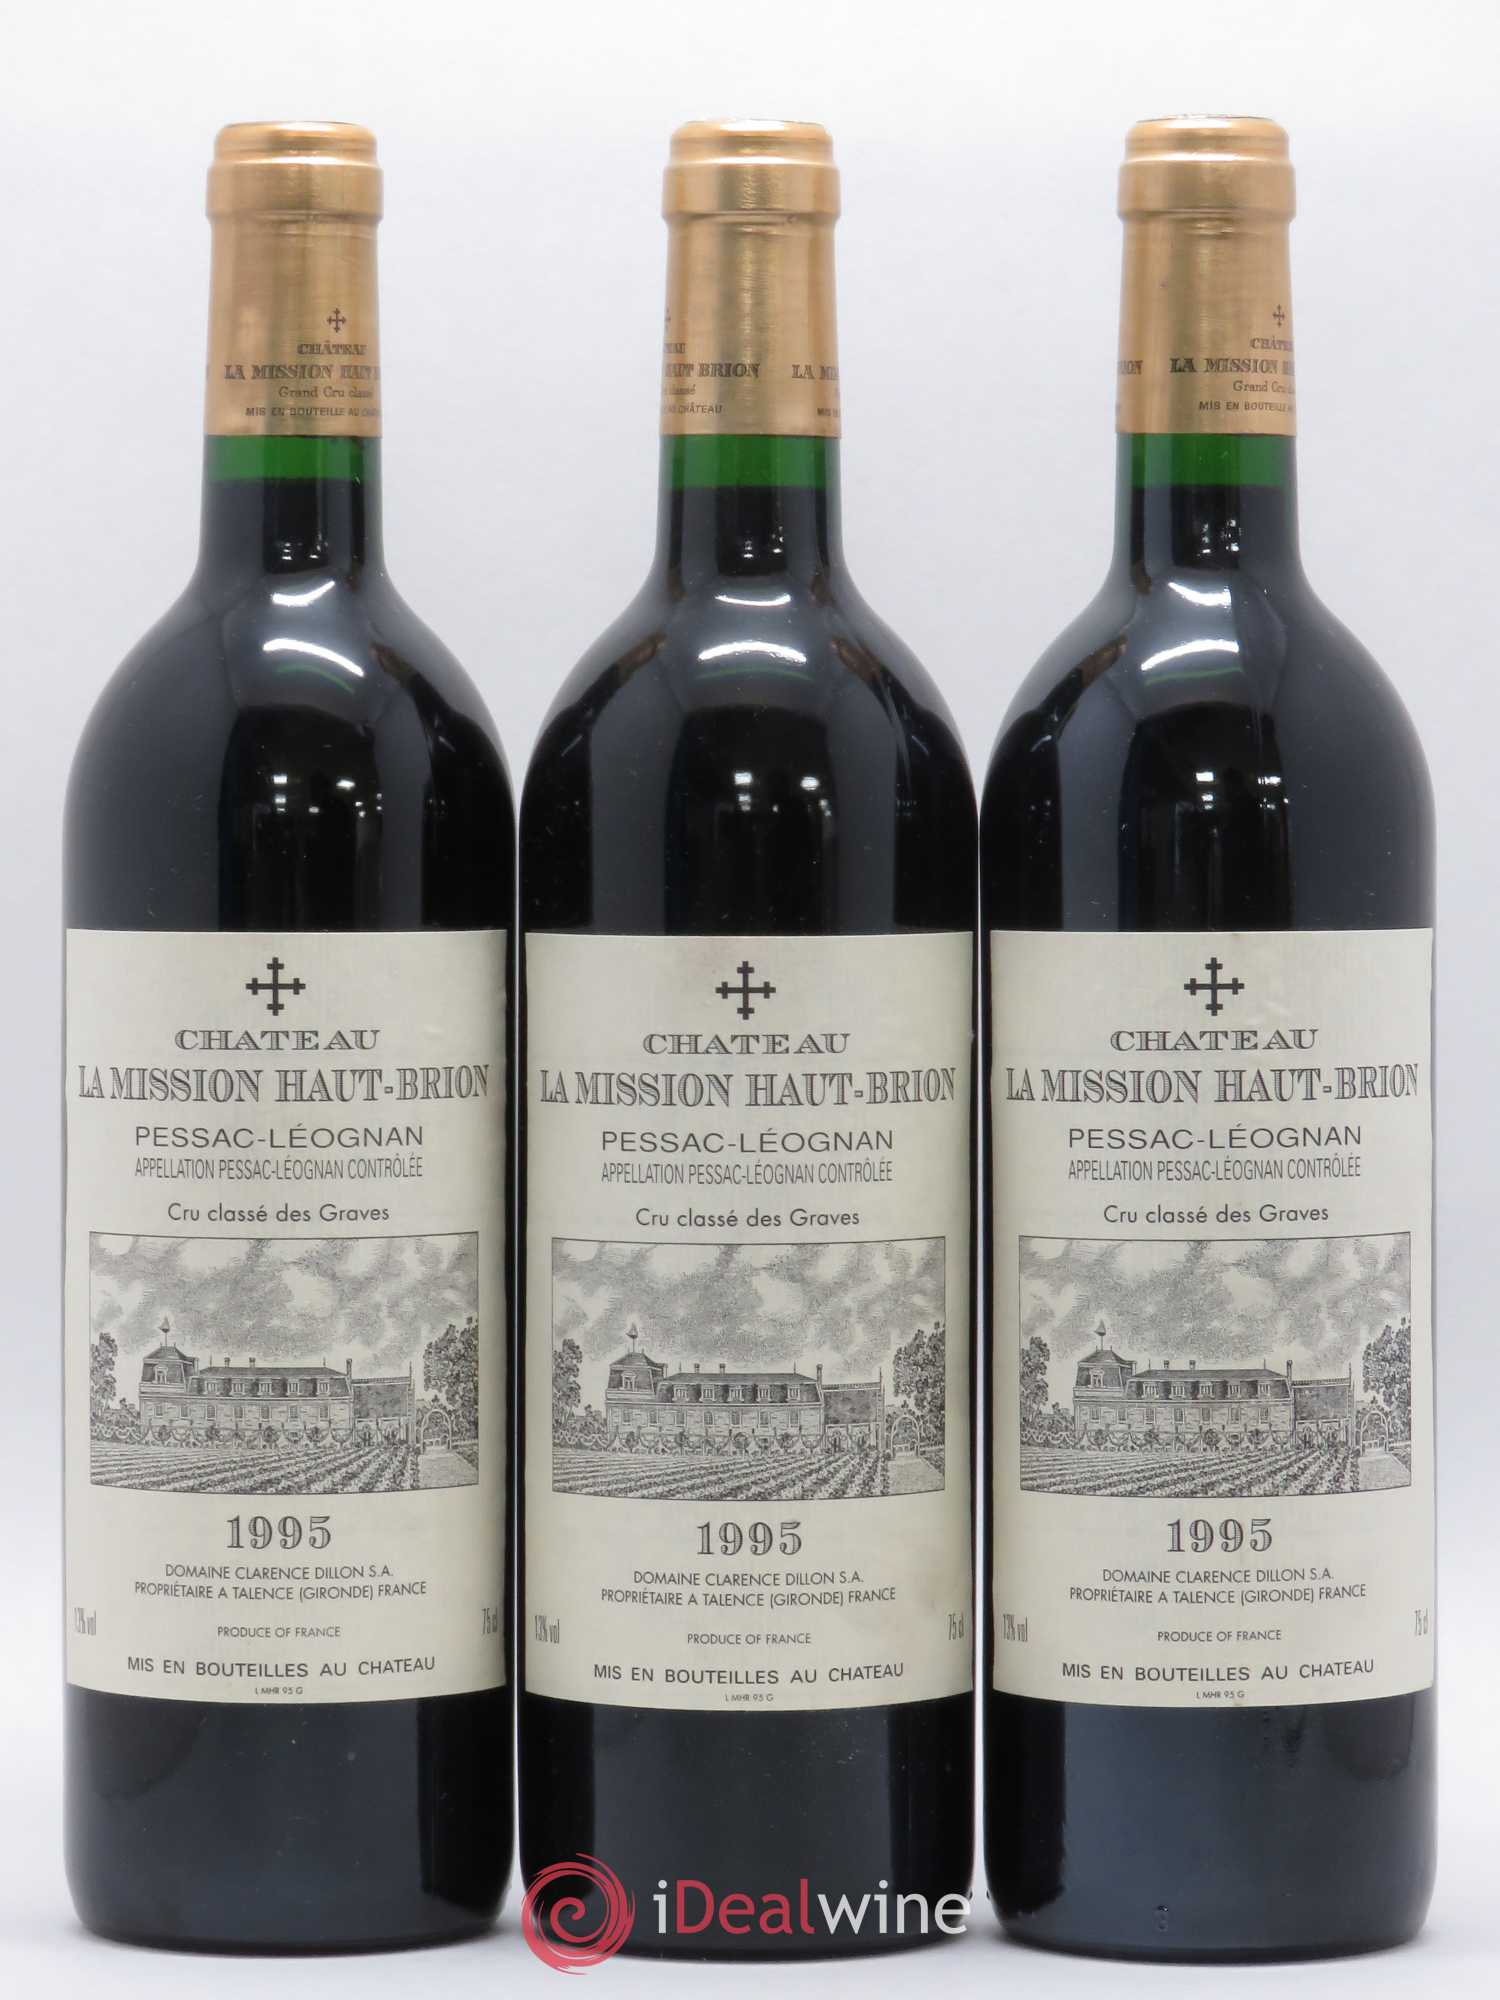 Château La Mission Haut-Brion Cru Classé de Graves  1995 - Lot of 3 Bottles